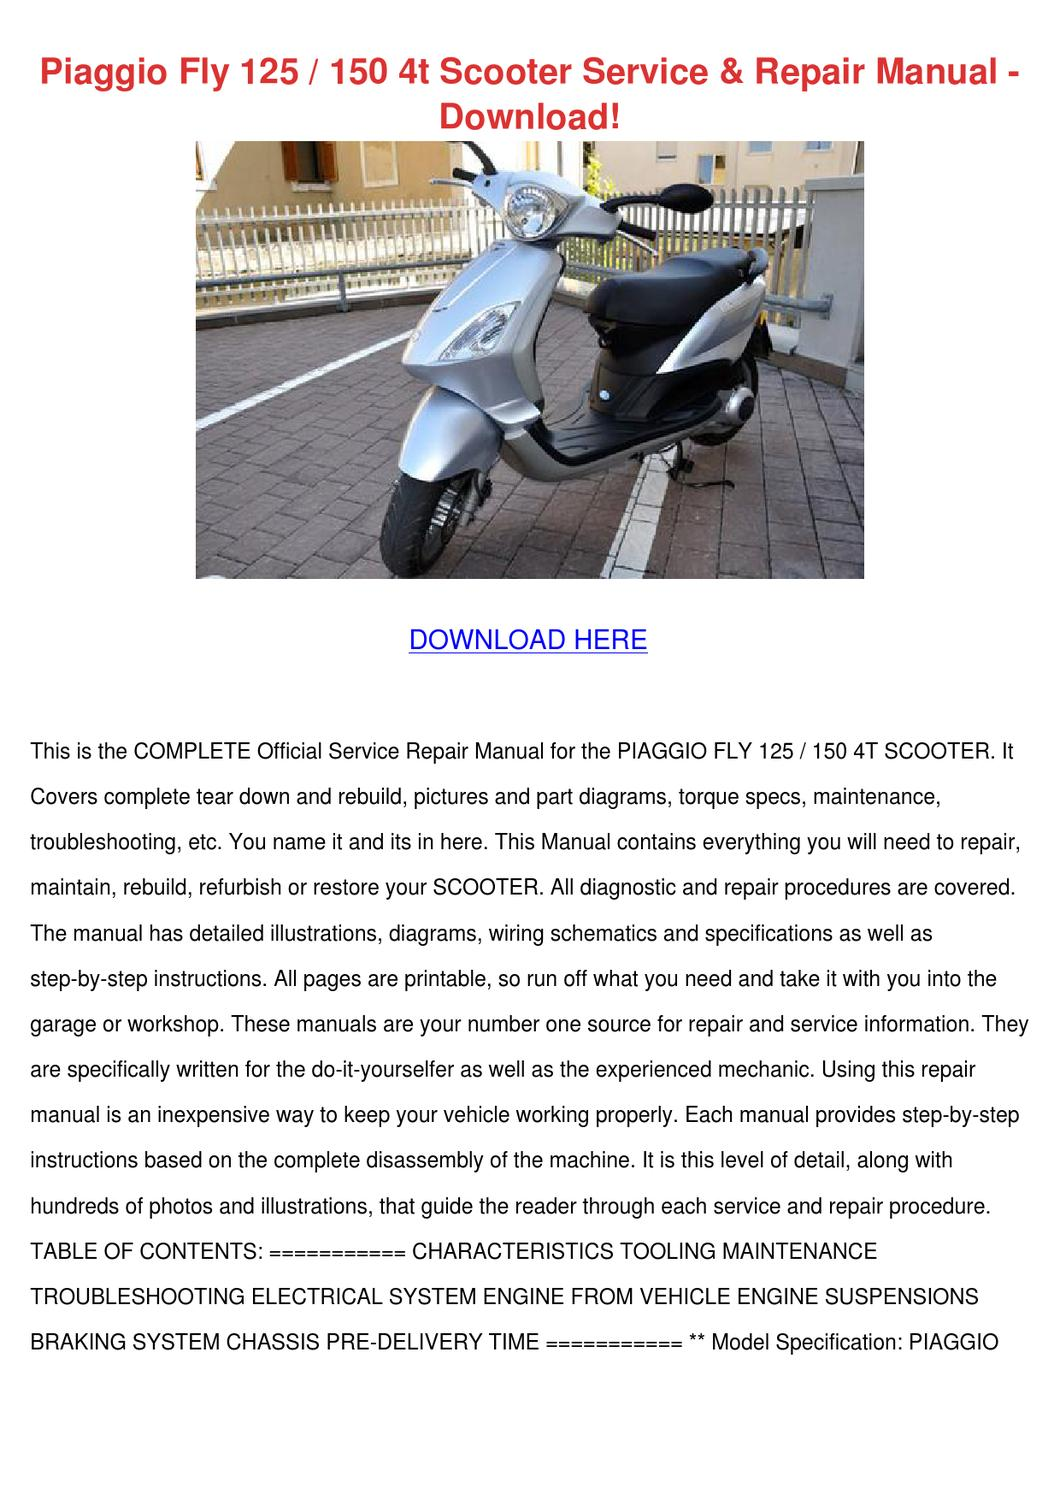 Piaggio Fly 125 150 4t Scooter Service Repair By Byronbecnel